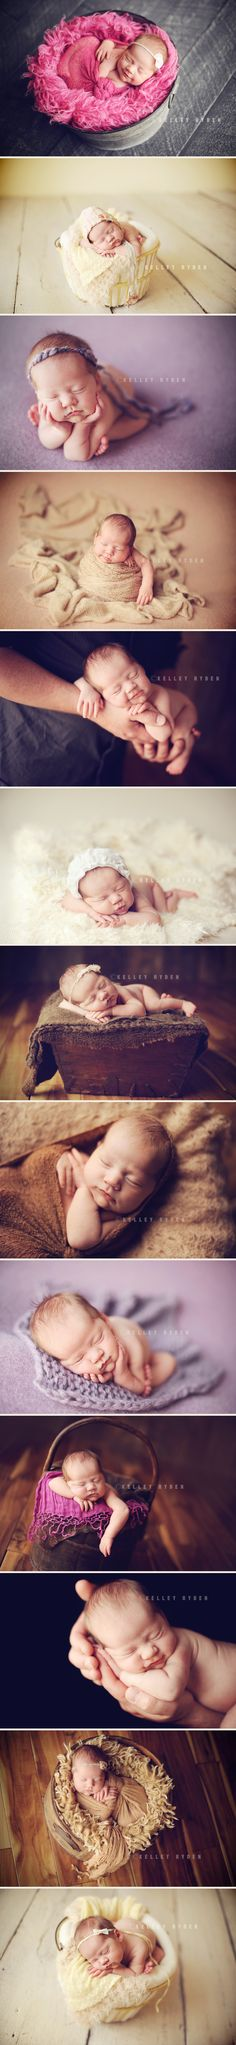 newborn girl styling and posing